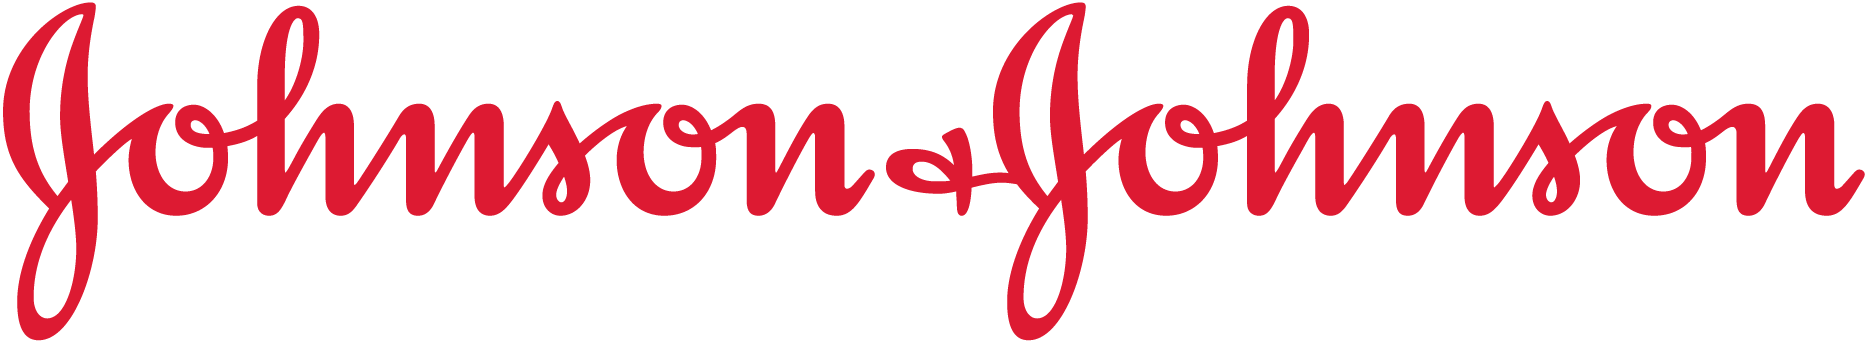 Johnson and Johnson red logo